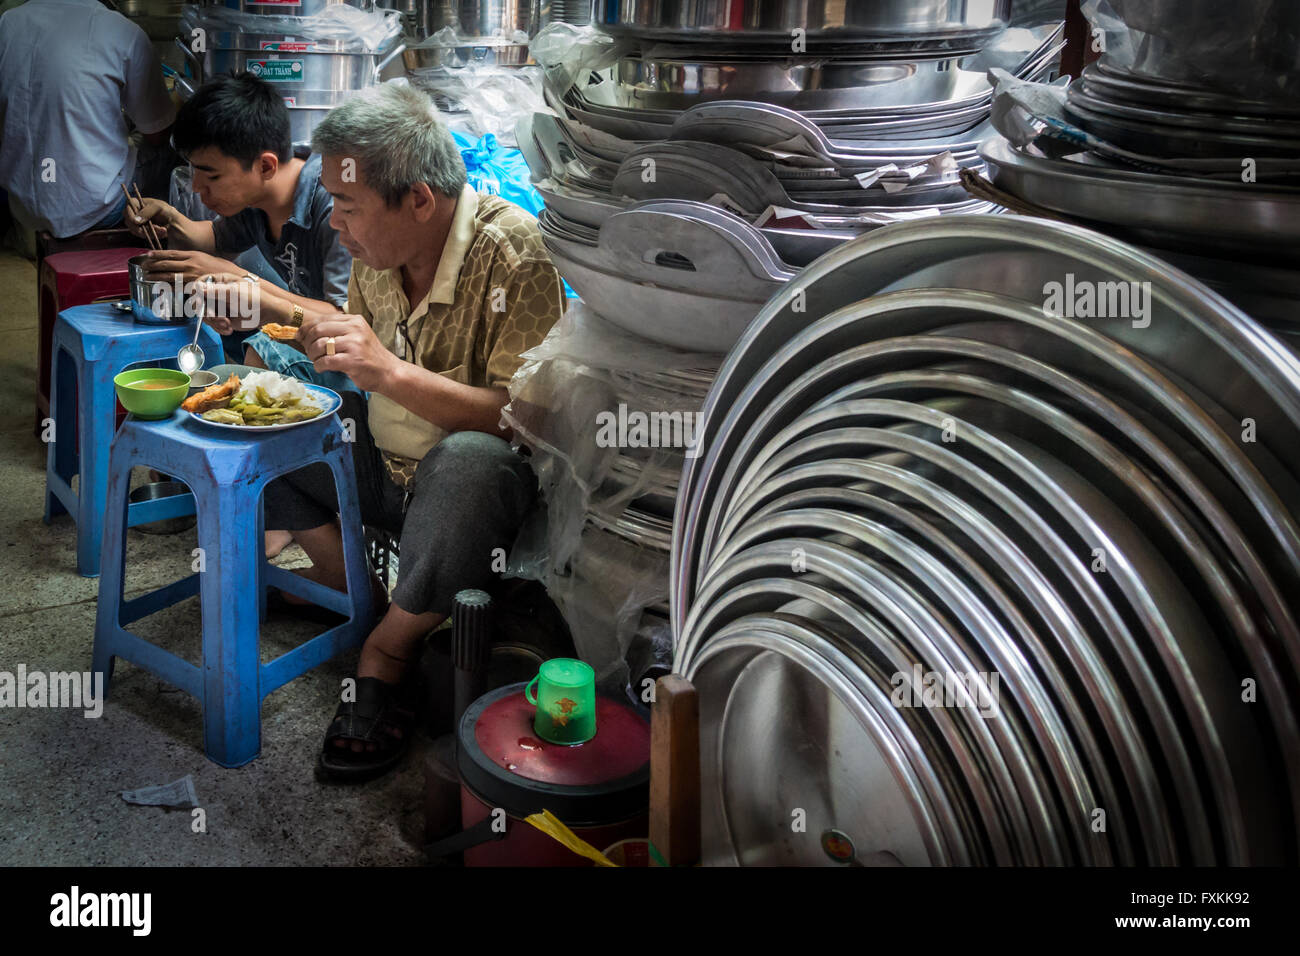 Locals eating lunch inside Binh Tay Market, Ho Chi Minh City, Vietnam - Stock Image